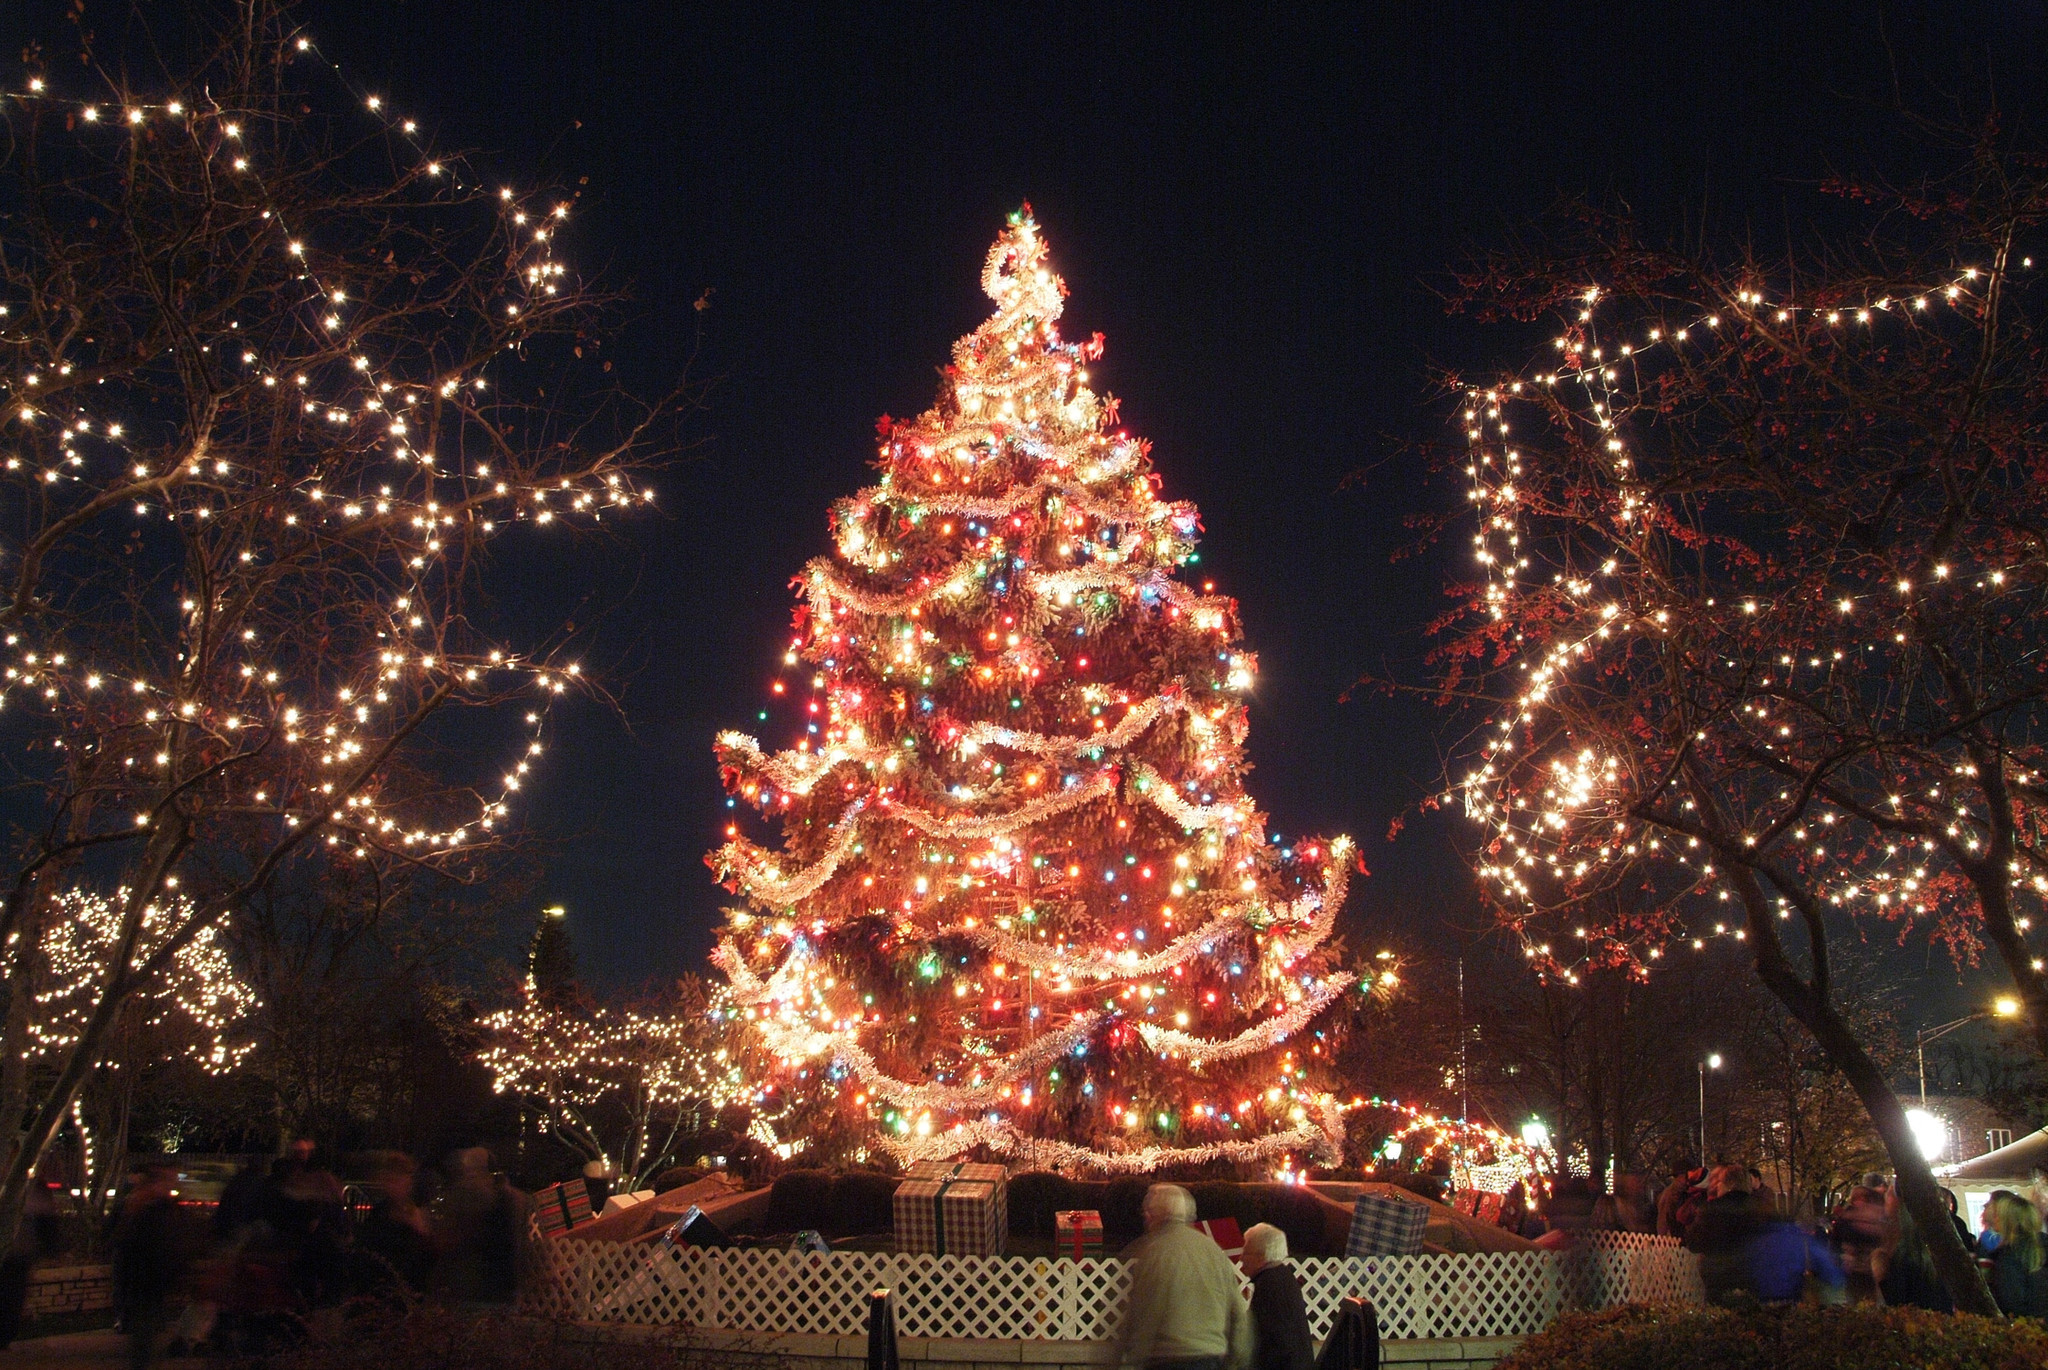 arlington heights tree lighting ceremony november 28 chicago tribune